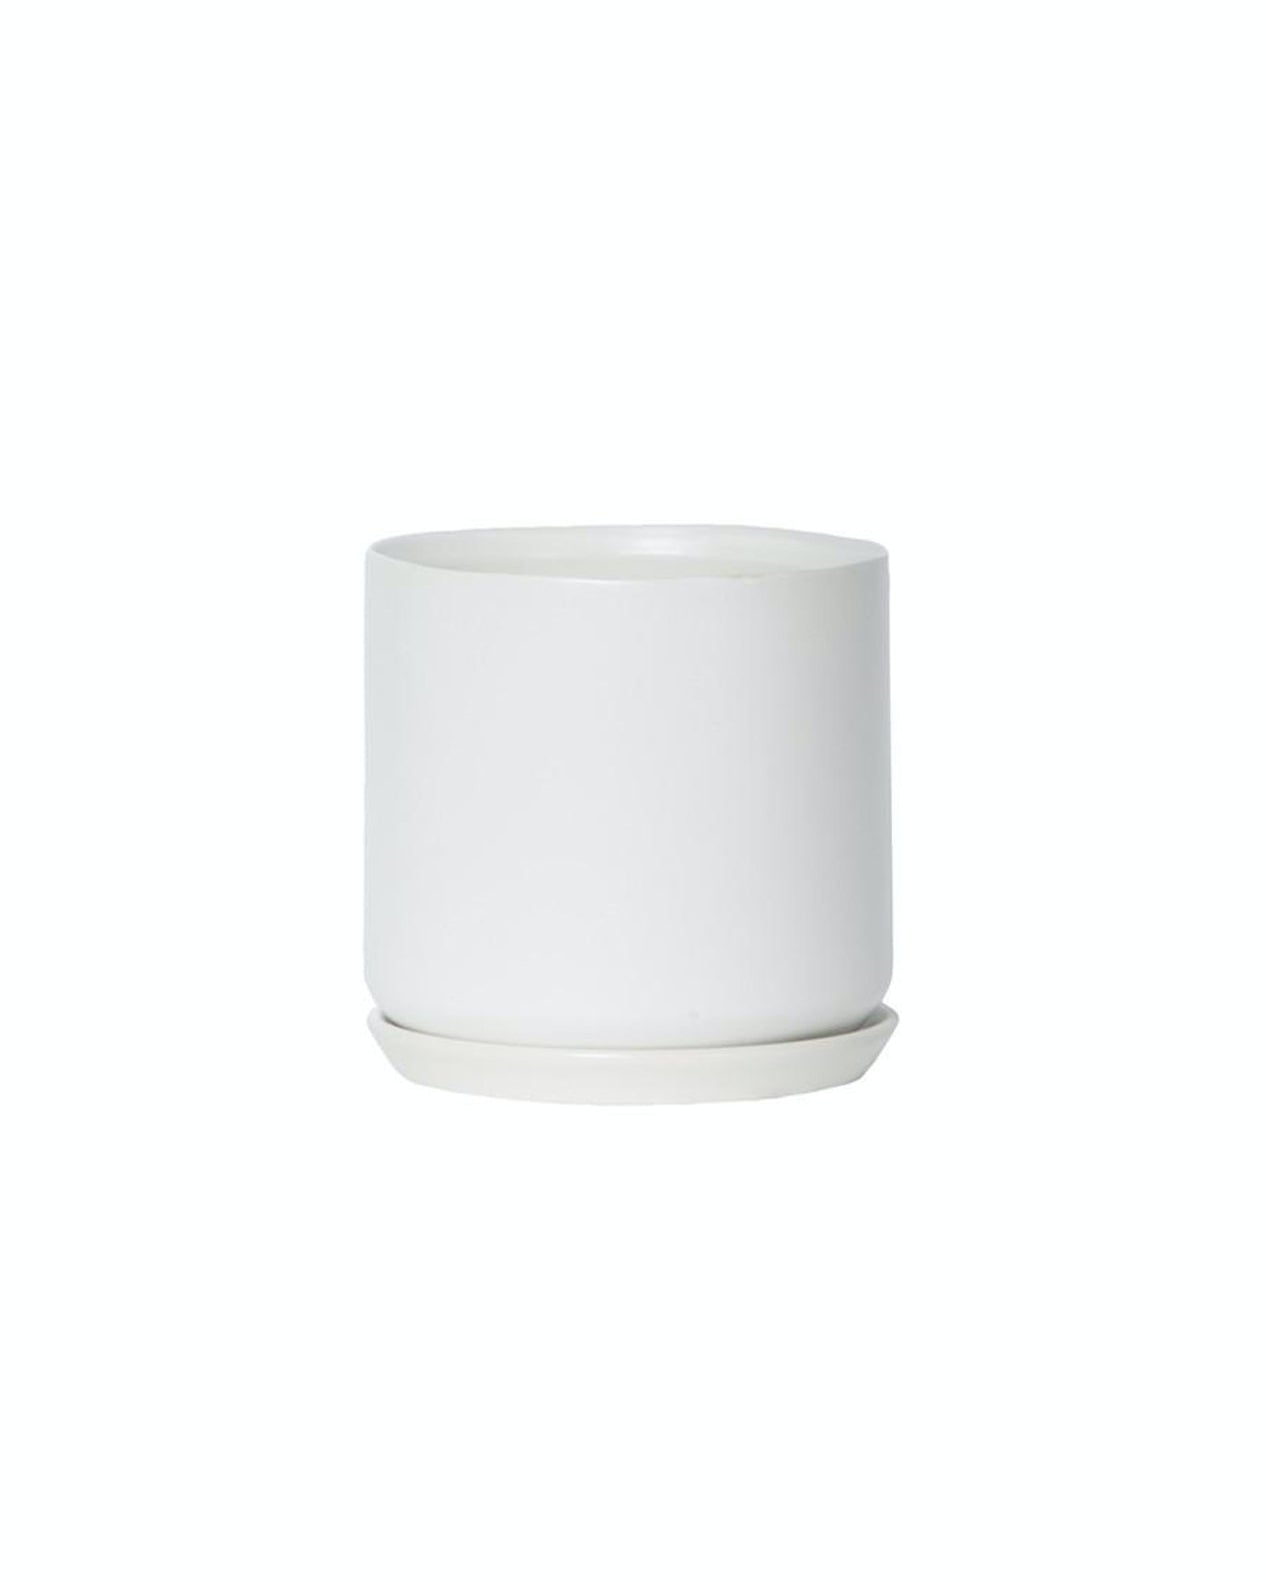 Oslo Planter - Ice White